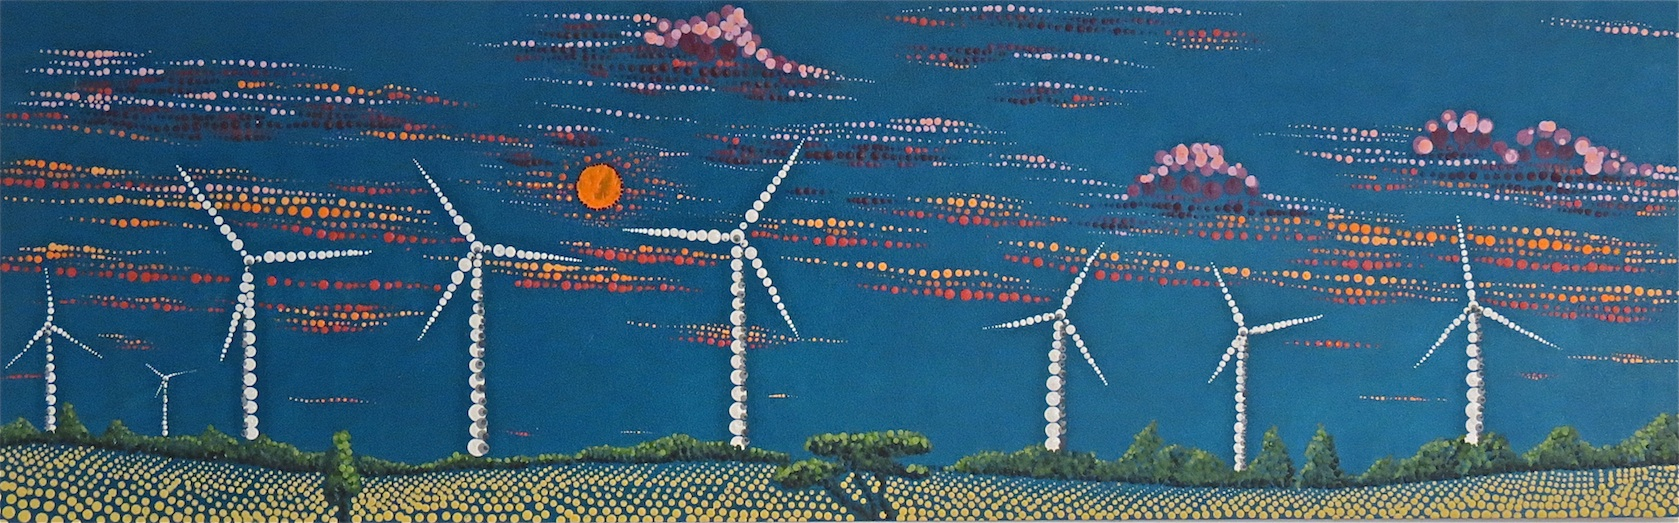 wind harvesters by lauren mckinley renzetti 36 x 12 , $350